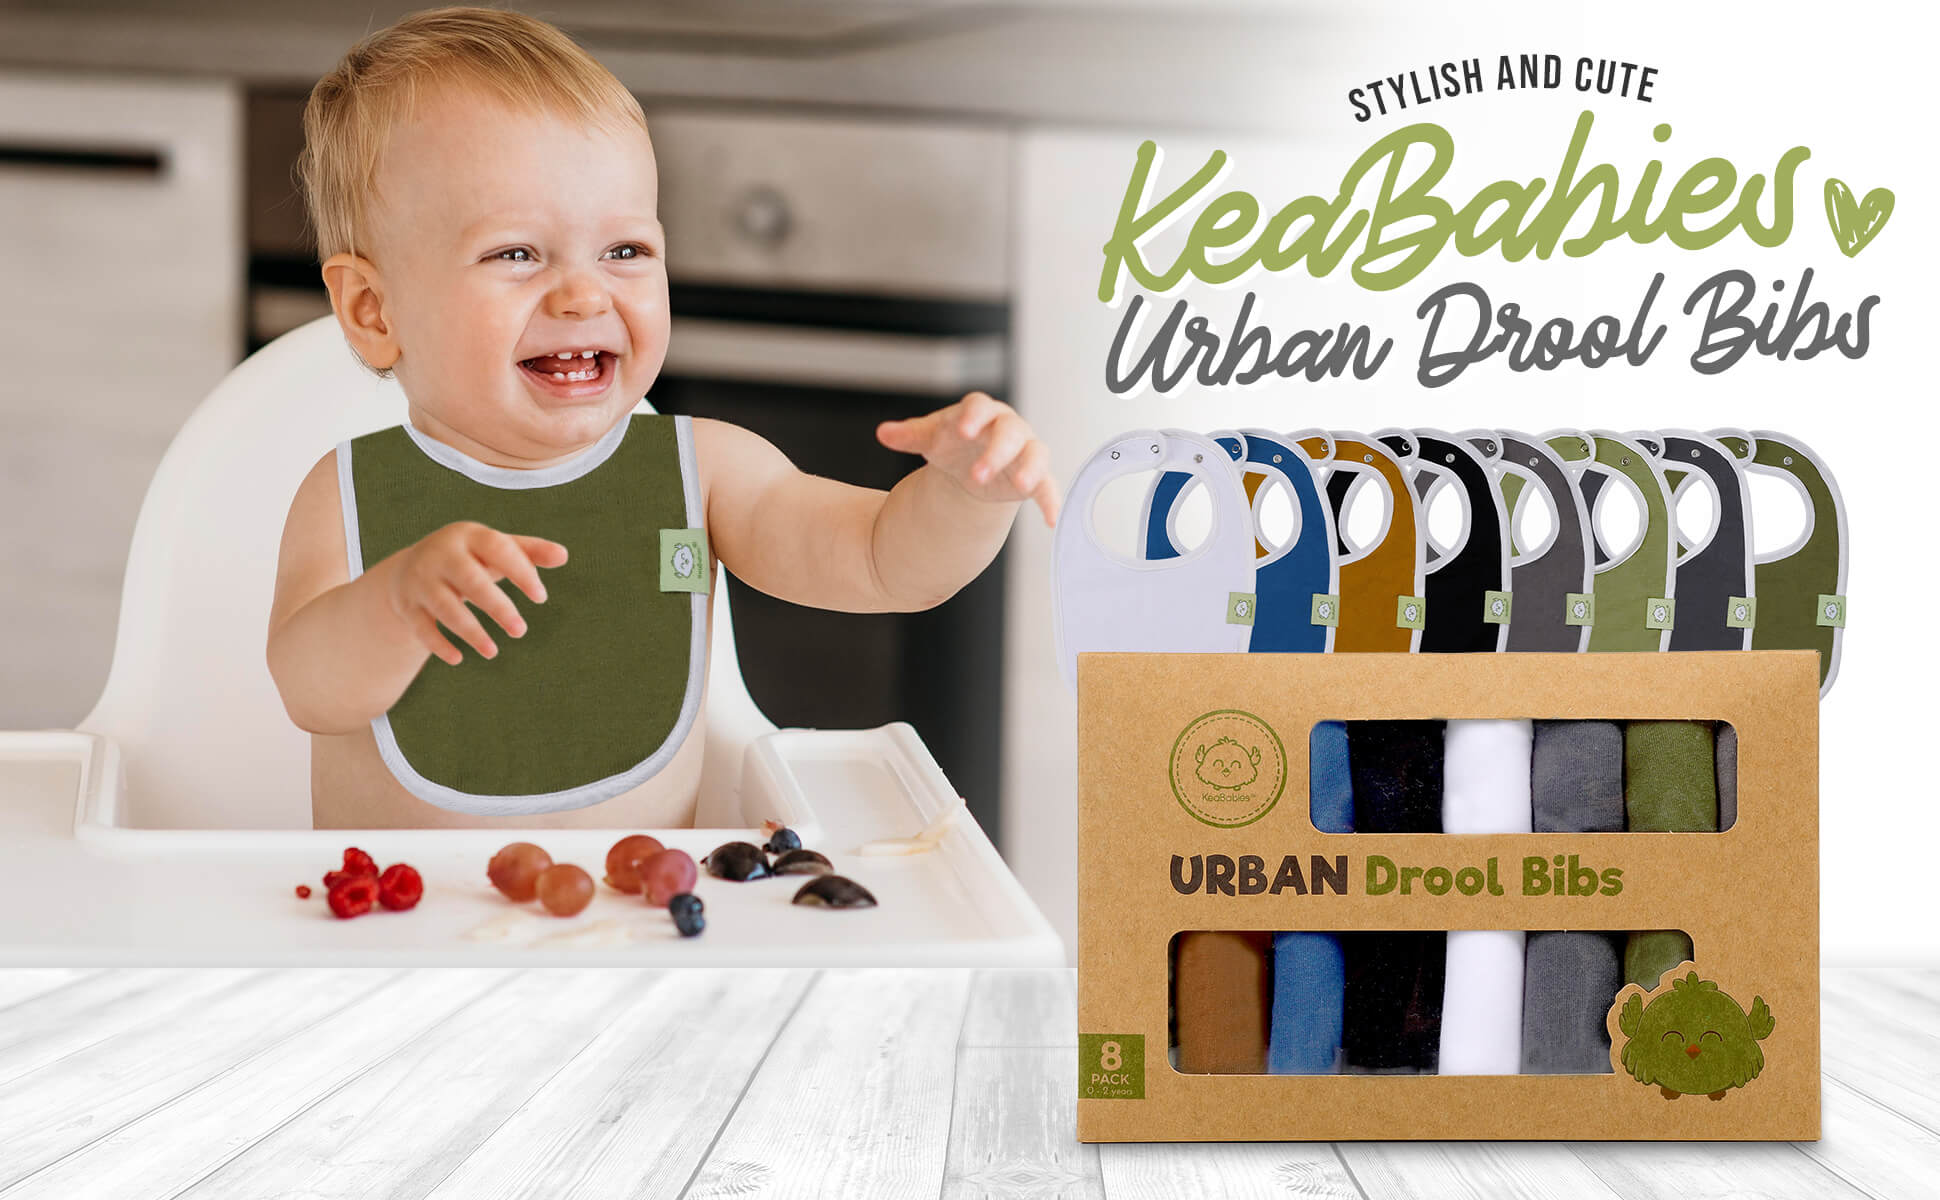 Handle Drooling With Ease: URBAN Drool Bibs